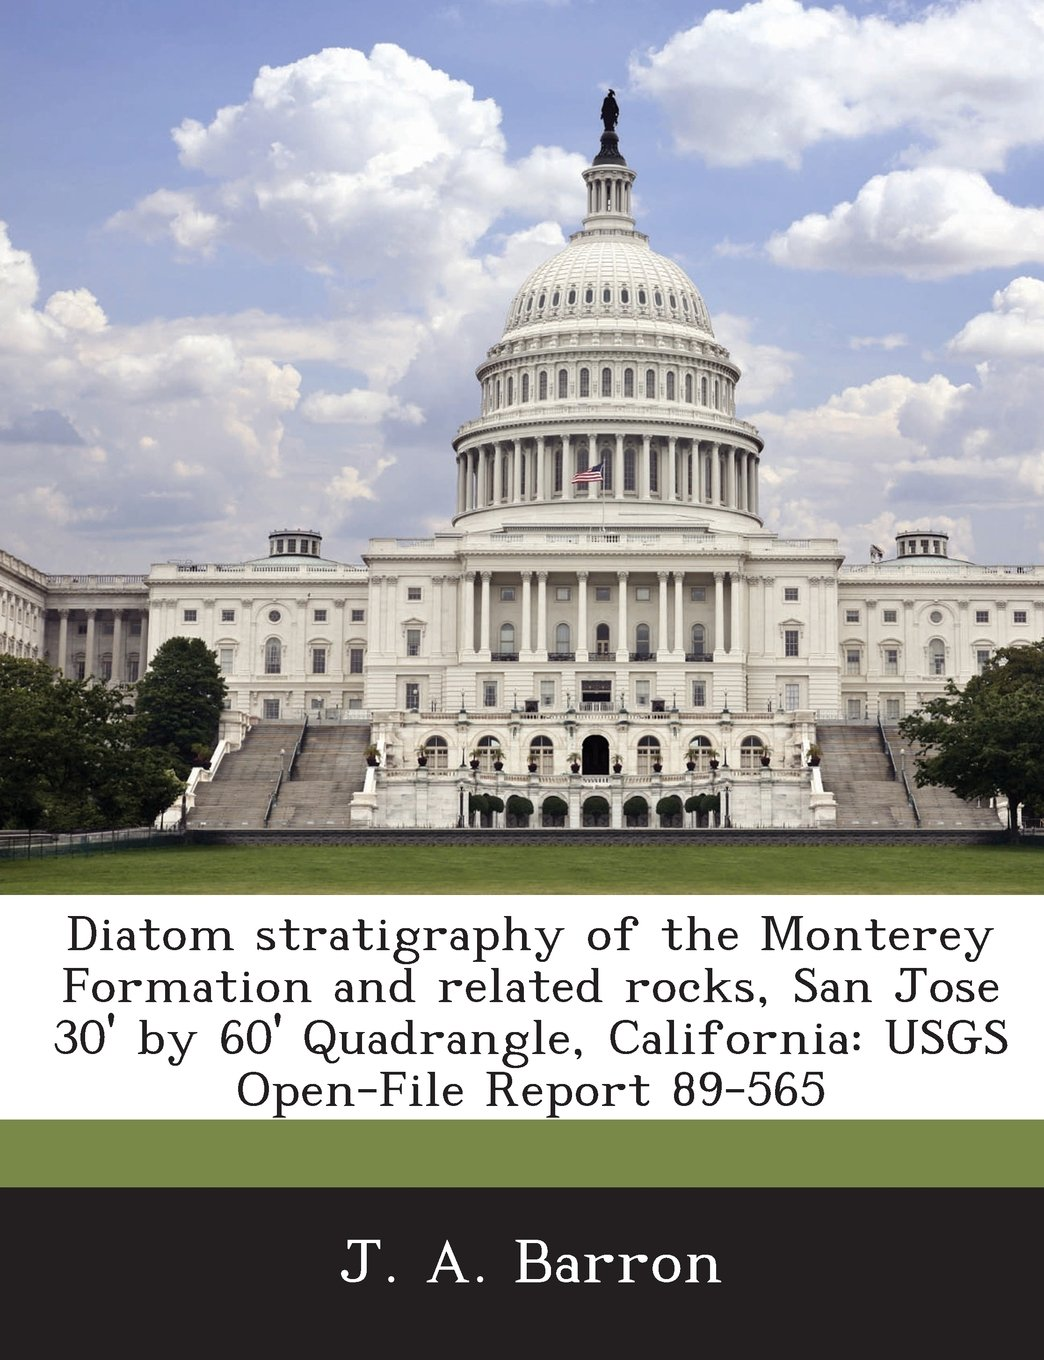 Download Diatom stratigraphy of the Monterey Formation and related rocks, San Jose 30' by 60' Quadrangle, California: USGS Open-File Report 89-565 PDF